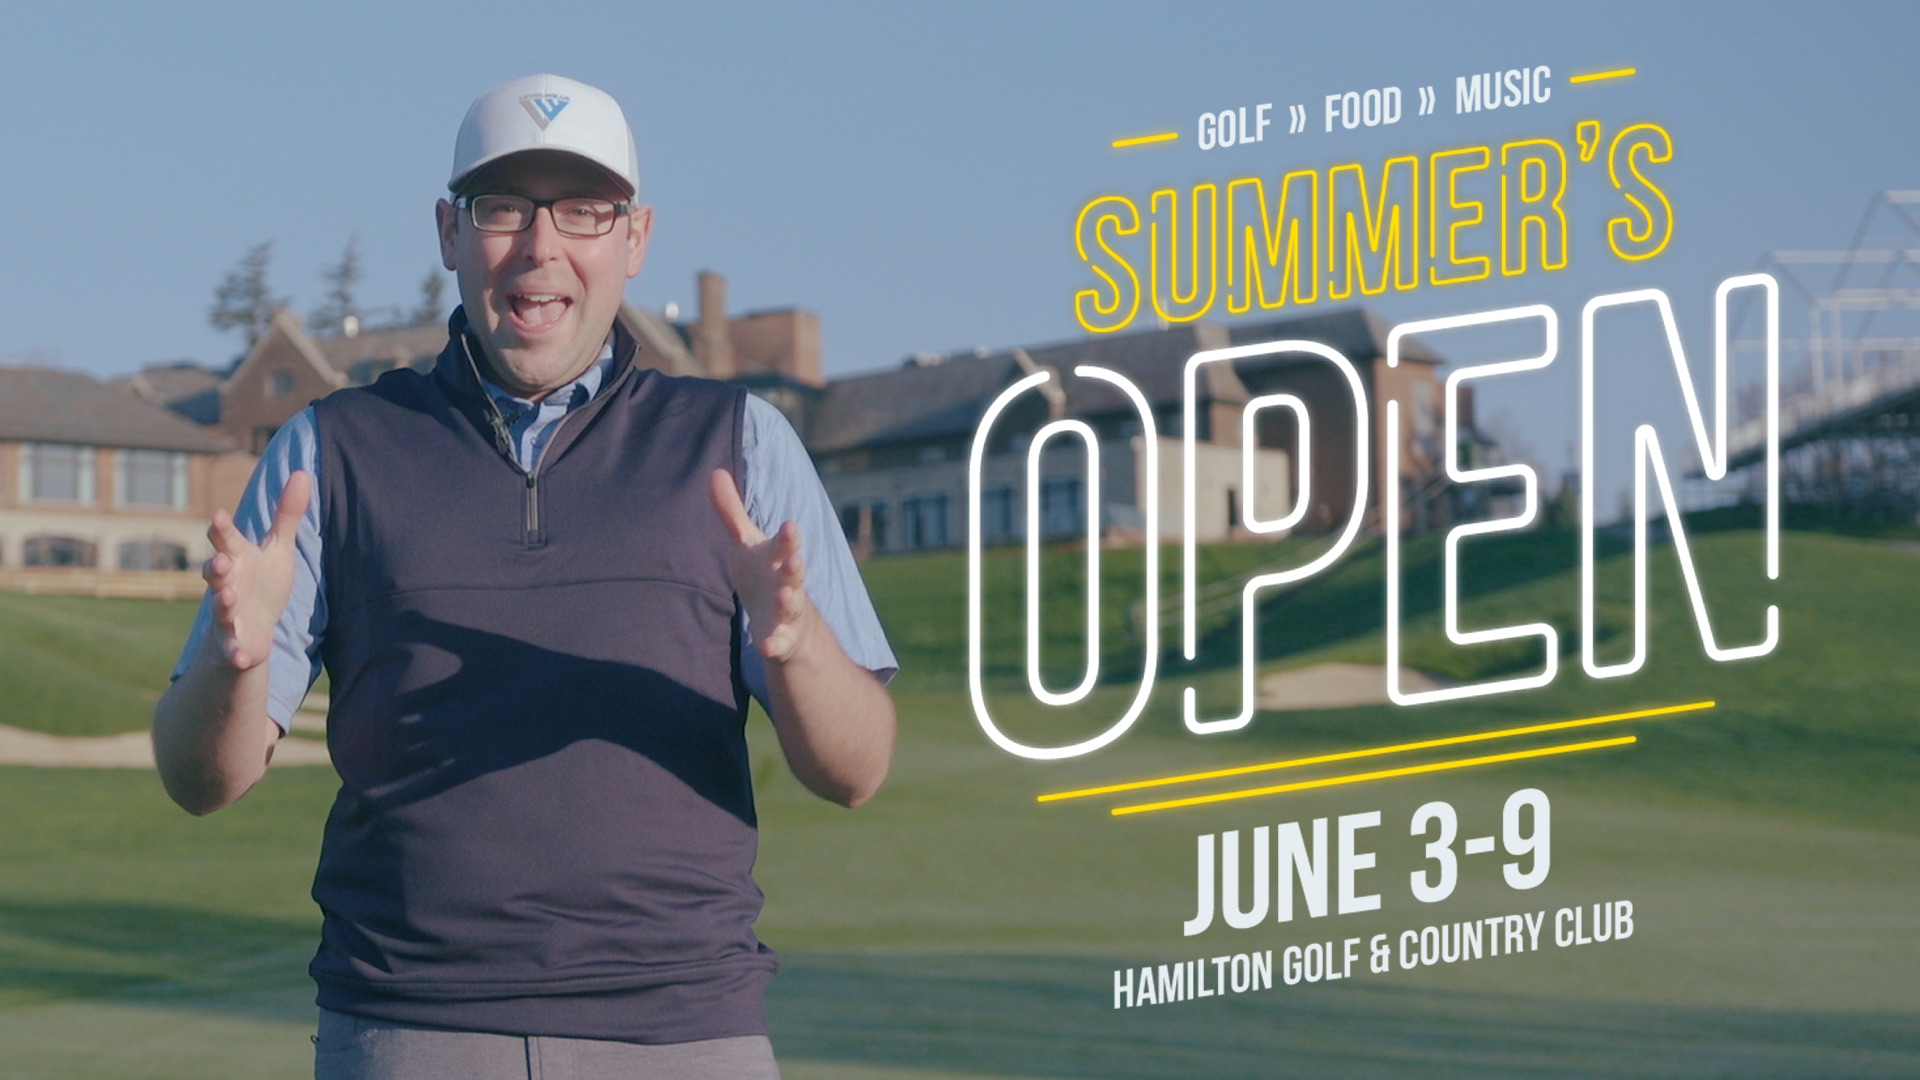 Quick Look At The Host Of The 2019 RBC Canadian Open